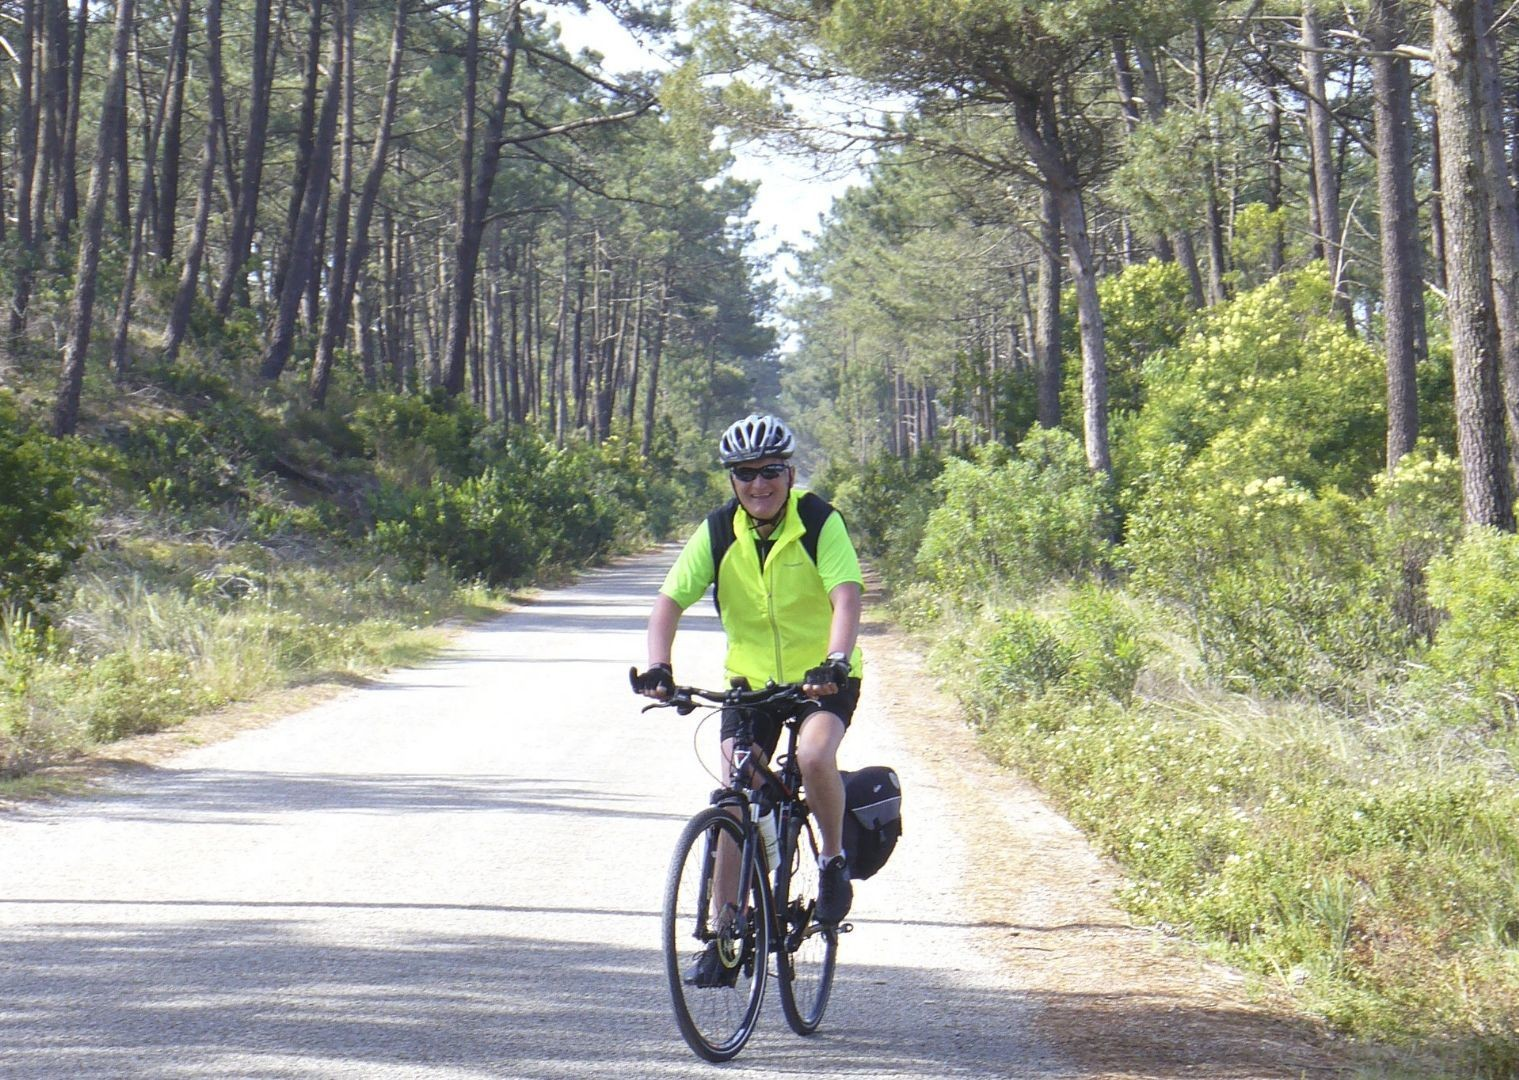 portugal.jpg - Portugal - Historic Villages - Self-Guided Leisure Cycling Holiday - Leisure Cycling